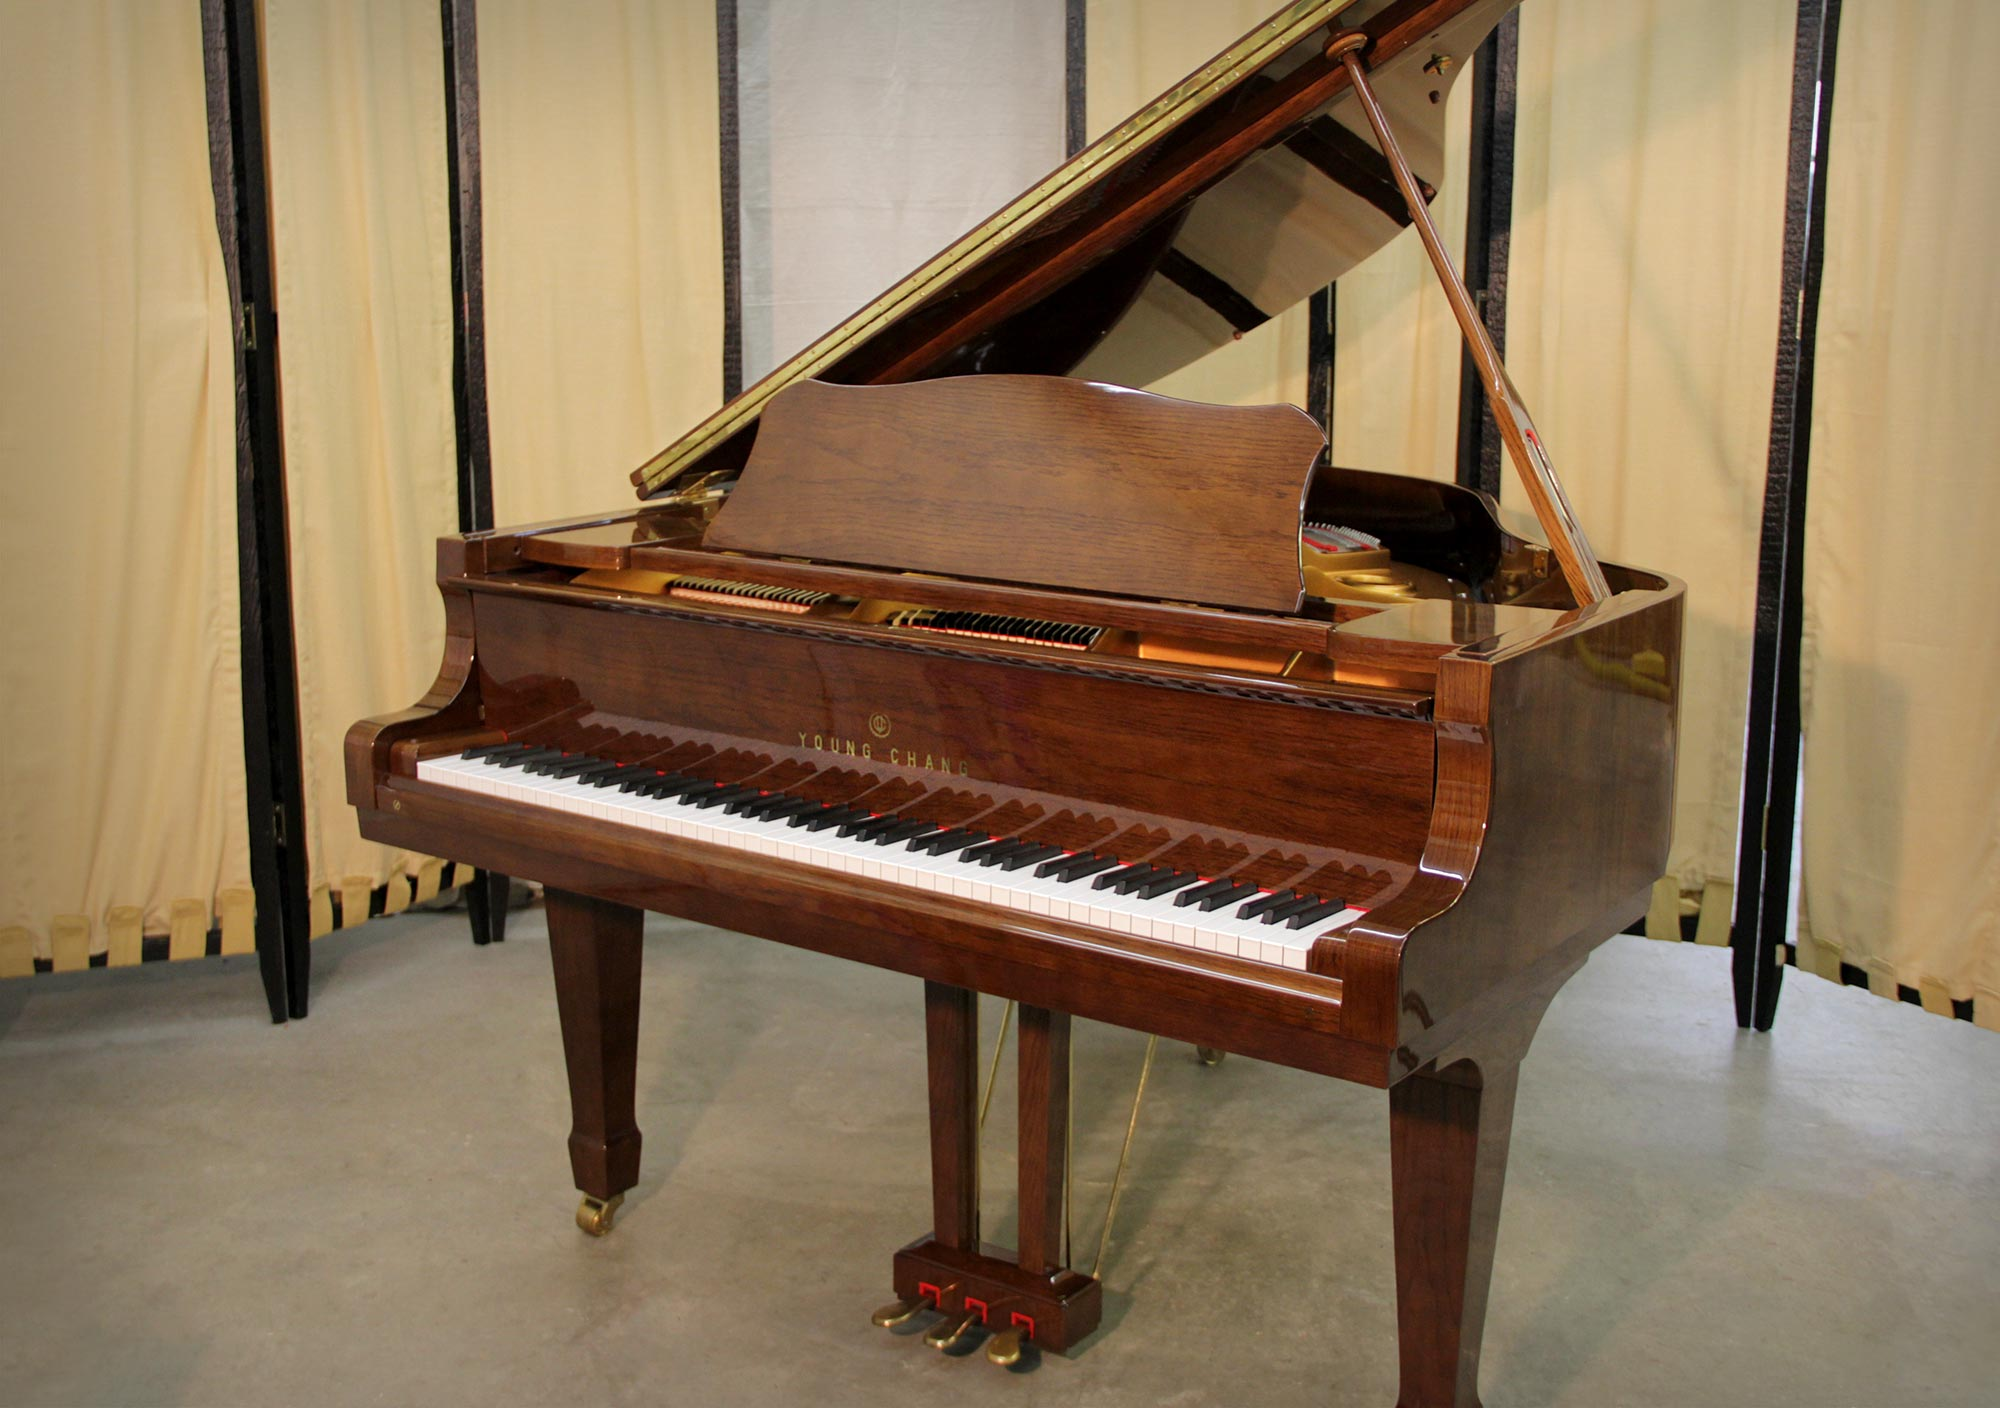 Young Chang G-157 Grand Piano | Open Lid